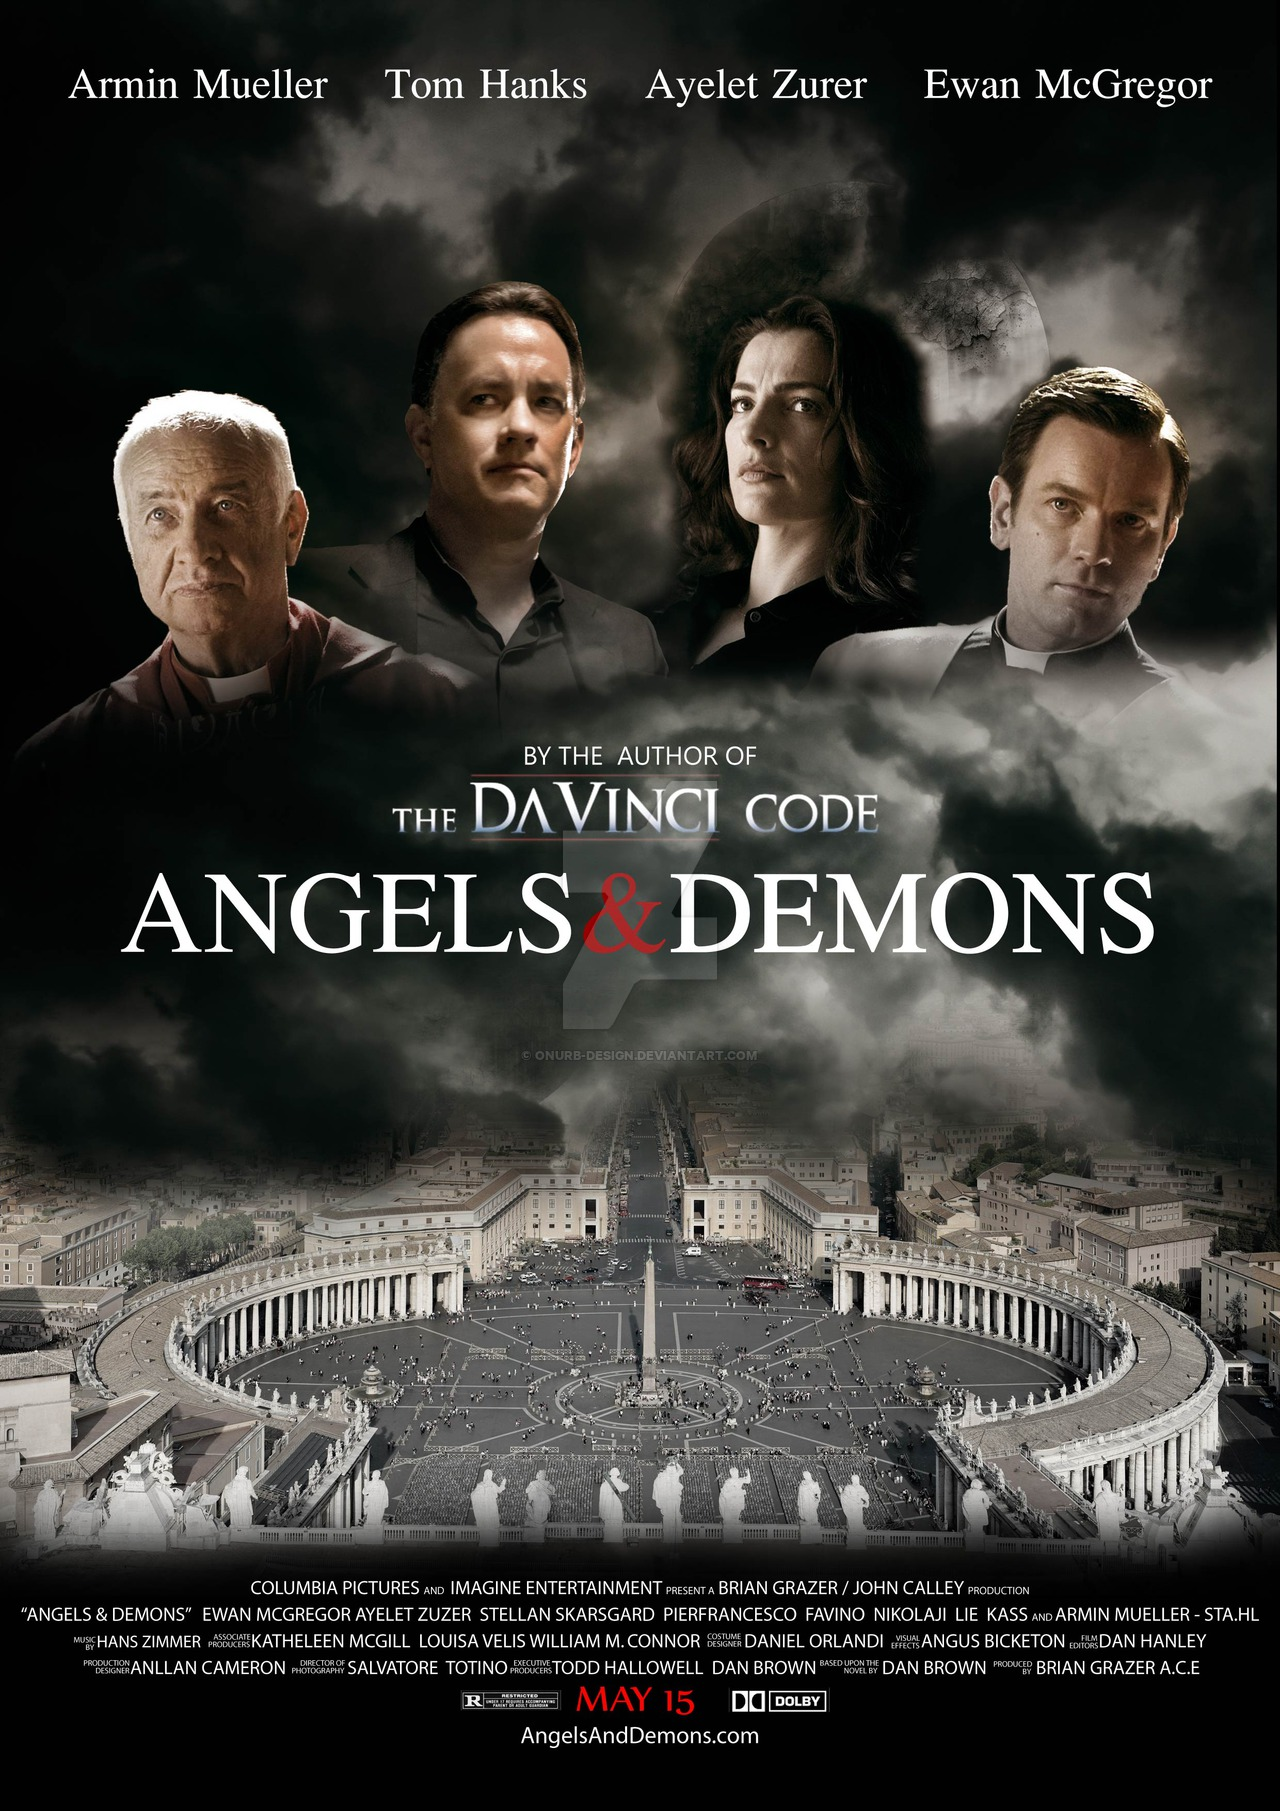 angels and demons movie online free in hindi